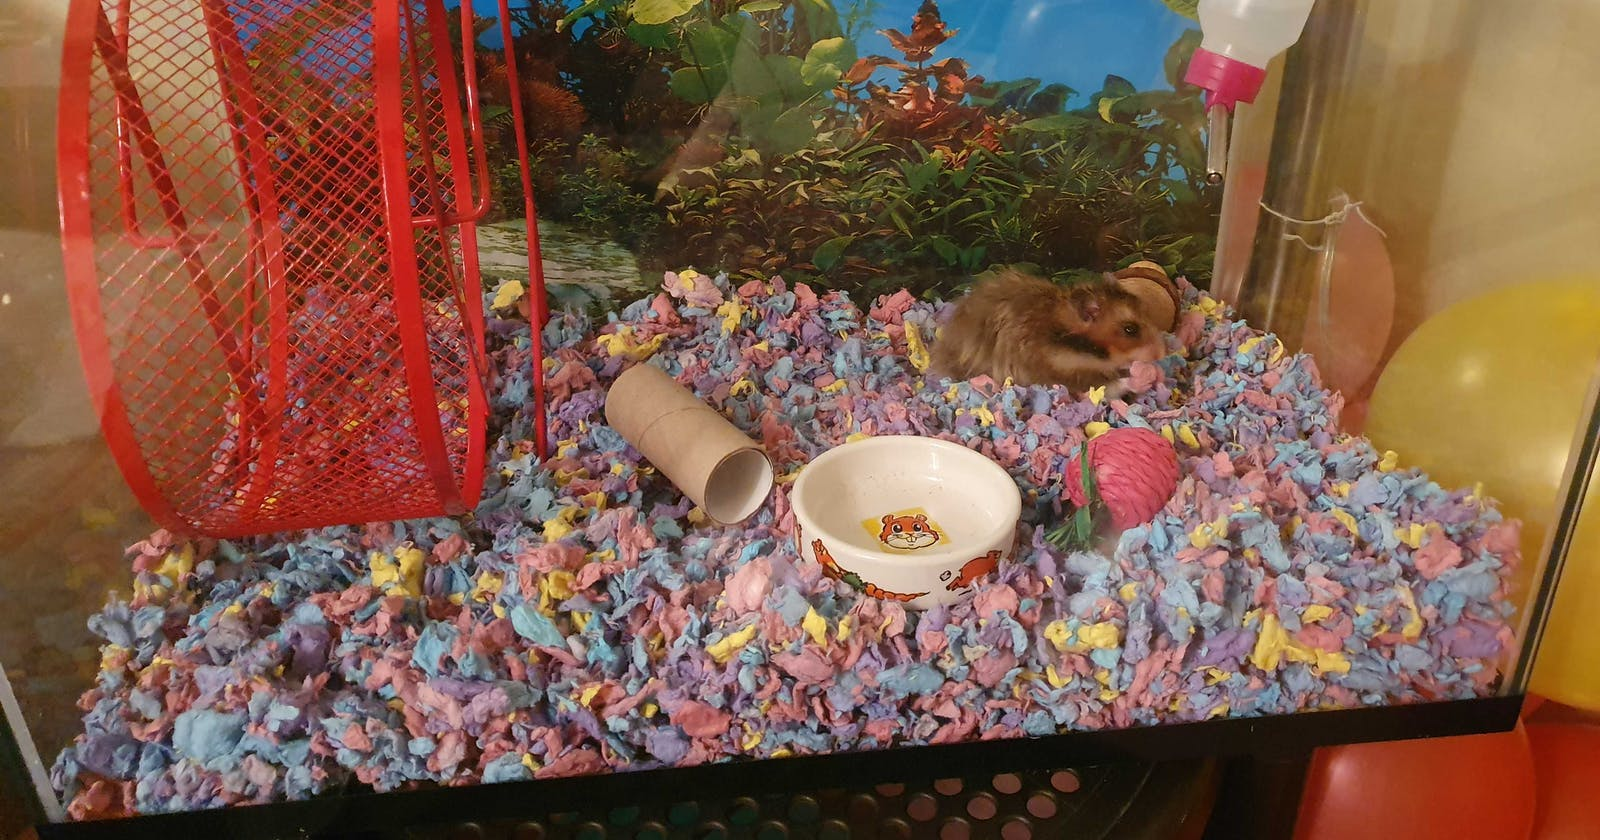 Lessons Learned From My Hamster